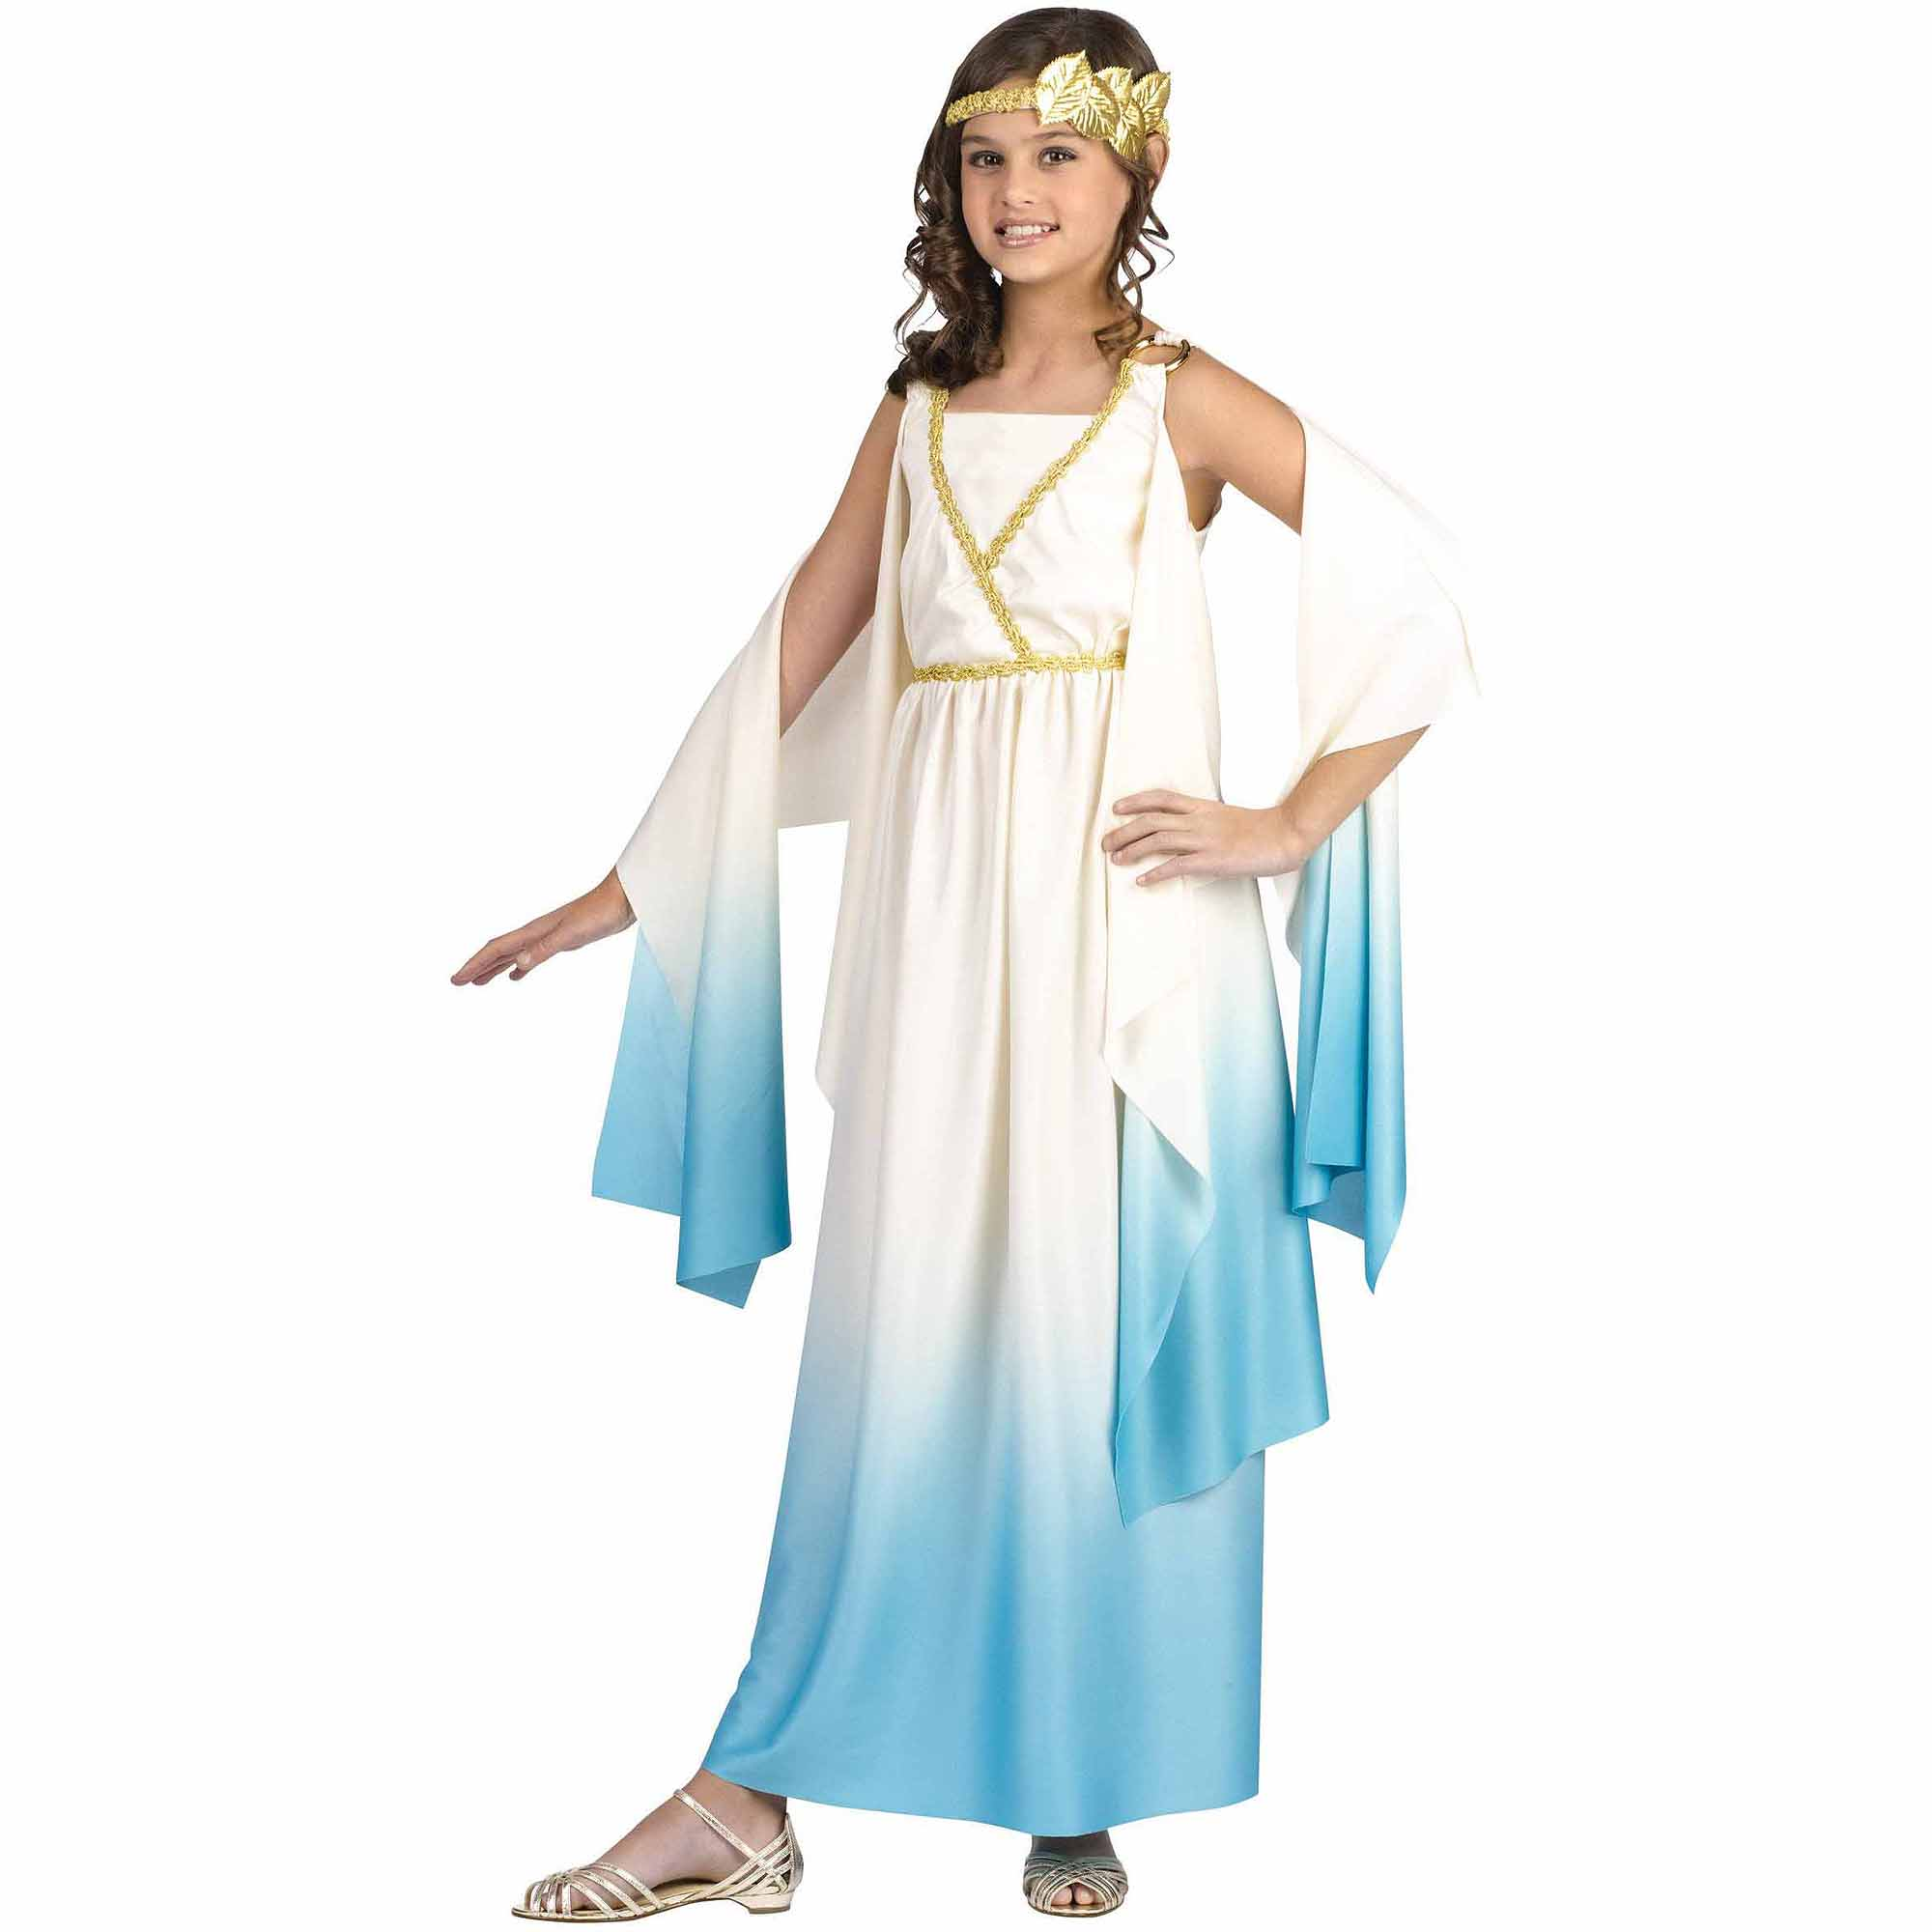 greek goddess child halloween costume walmartcom